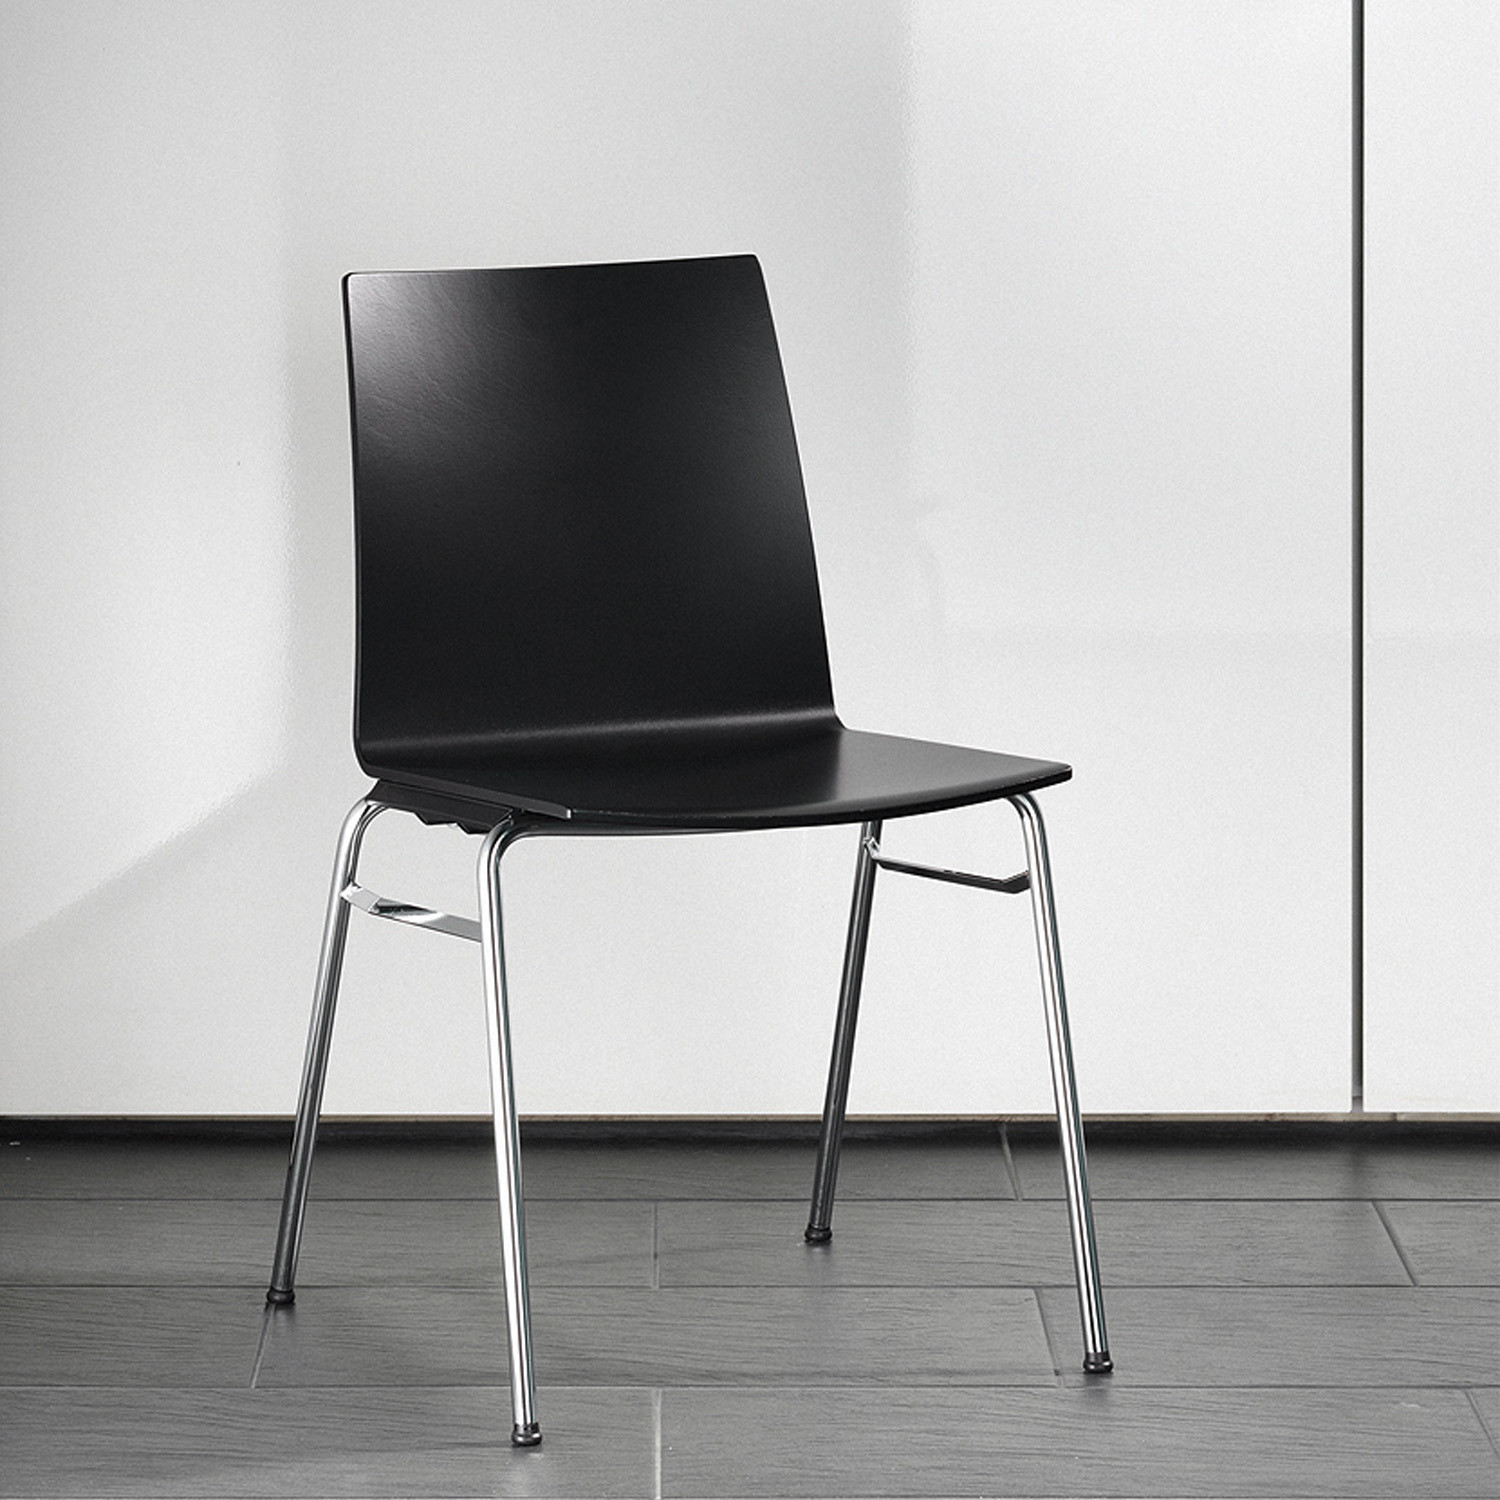 Arge2 Update Chair by Wiesner Hager